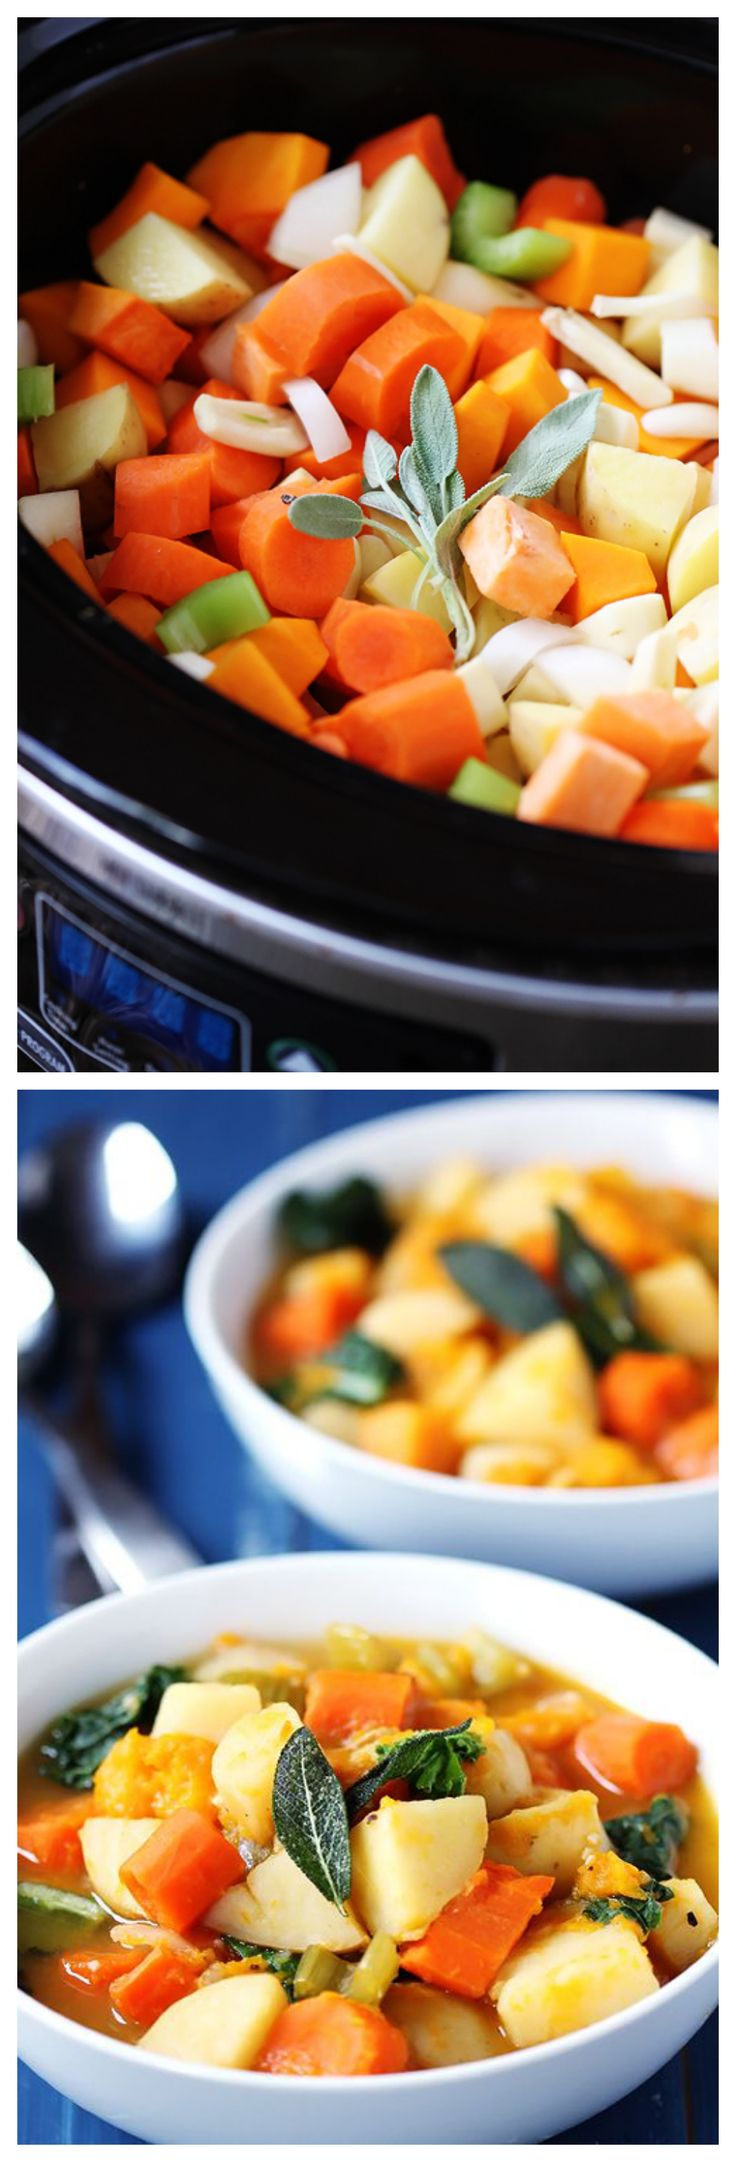 Slow Cooker Root Vegetable Stew -- simple, hearty, delicious   gimmesomeoven.com #slowcooker #crockpot